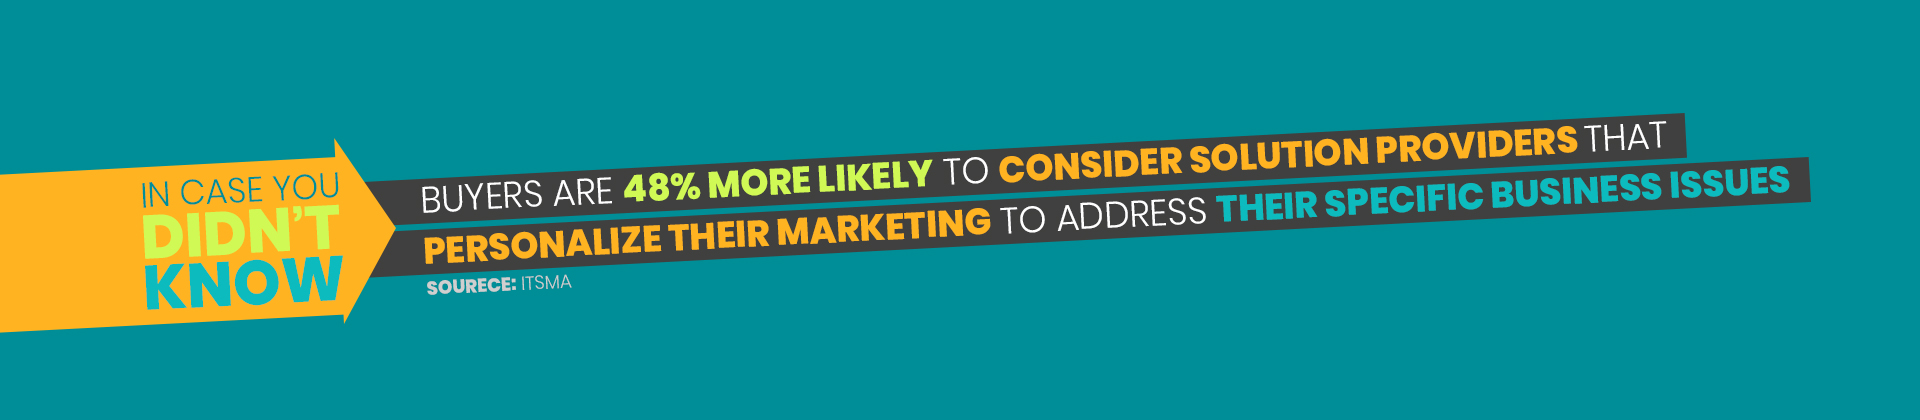 Buyers are 48% more likely to consider solution providers that personalize their marketing to address their specific business issues